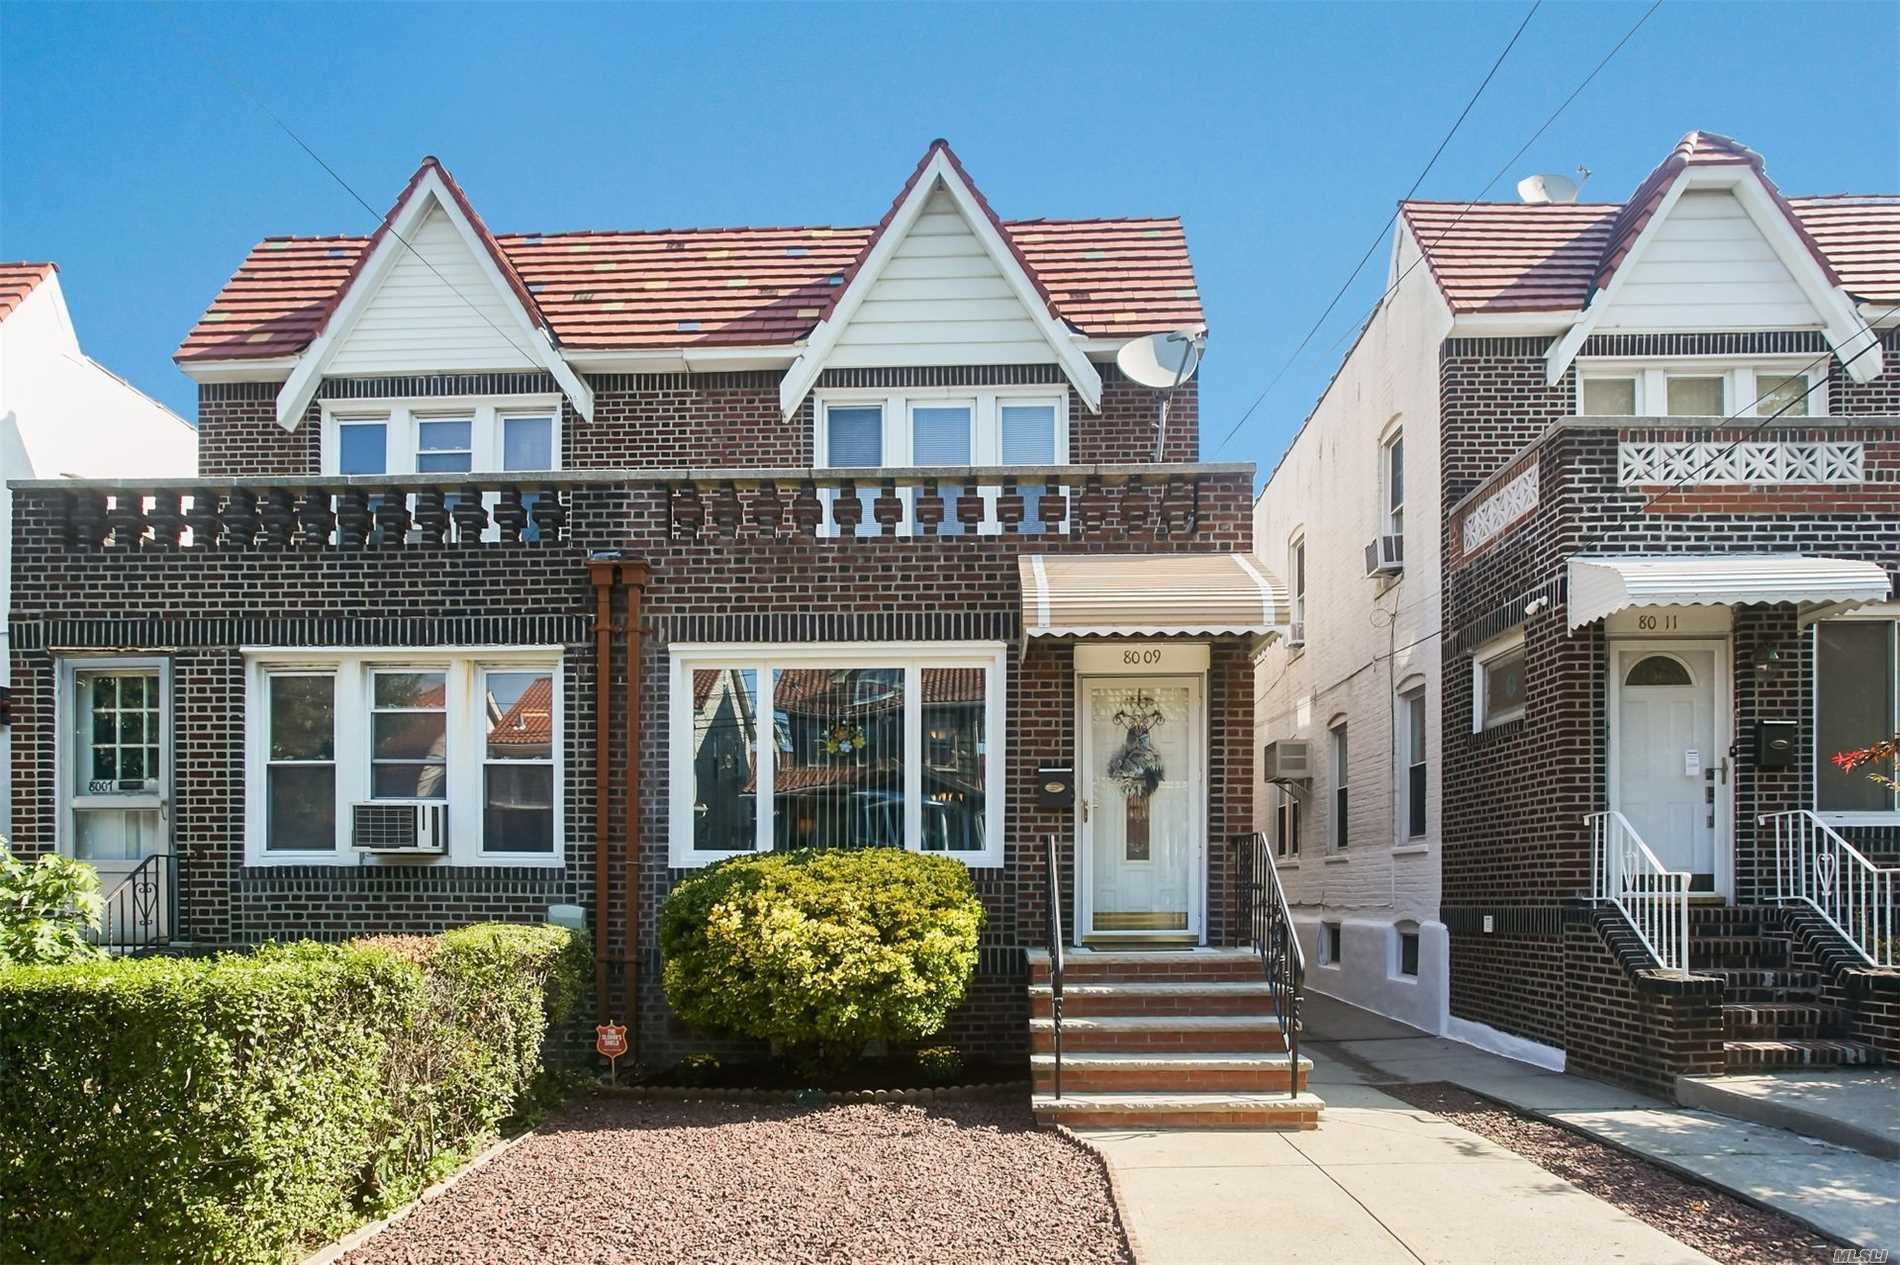 Beautiful Semi-Detatched 3 Bedroom Brick Home That Features A Kitchen With Granite Counters And Stainless Steel Appliances, Beautiful Hardwood Floors 2 Modern Bathrooms And A Finished Basement With Wet Bar, Plus This Home Has Central Air , 2 Blocks From Express Bus To Manhattan And Zoned For Ps113